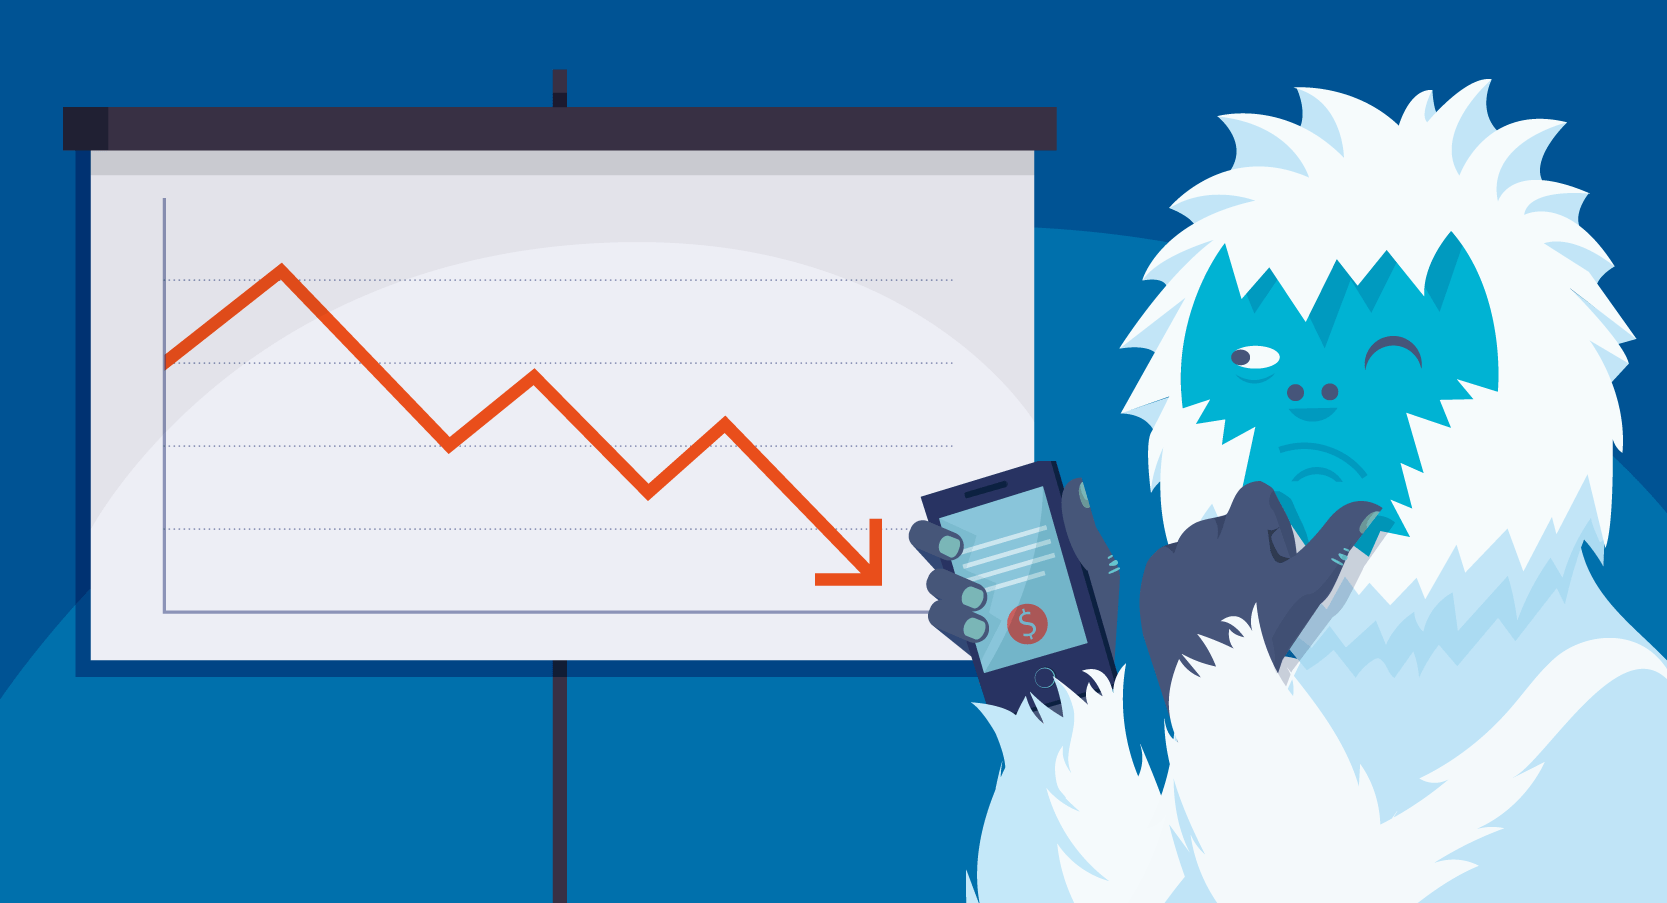 Yeti in front of downwards graph